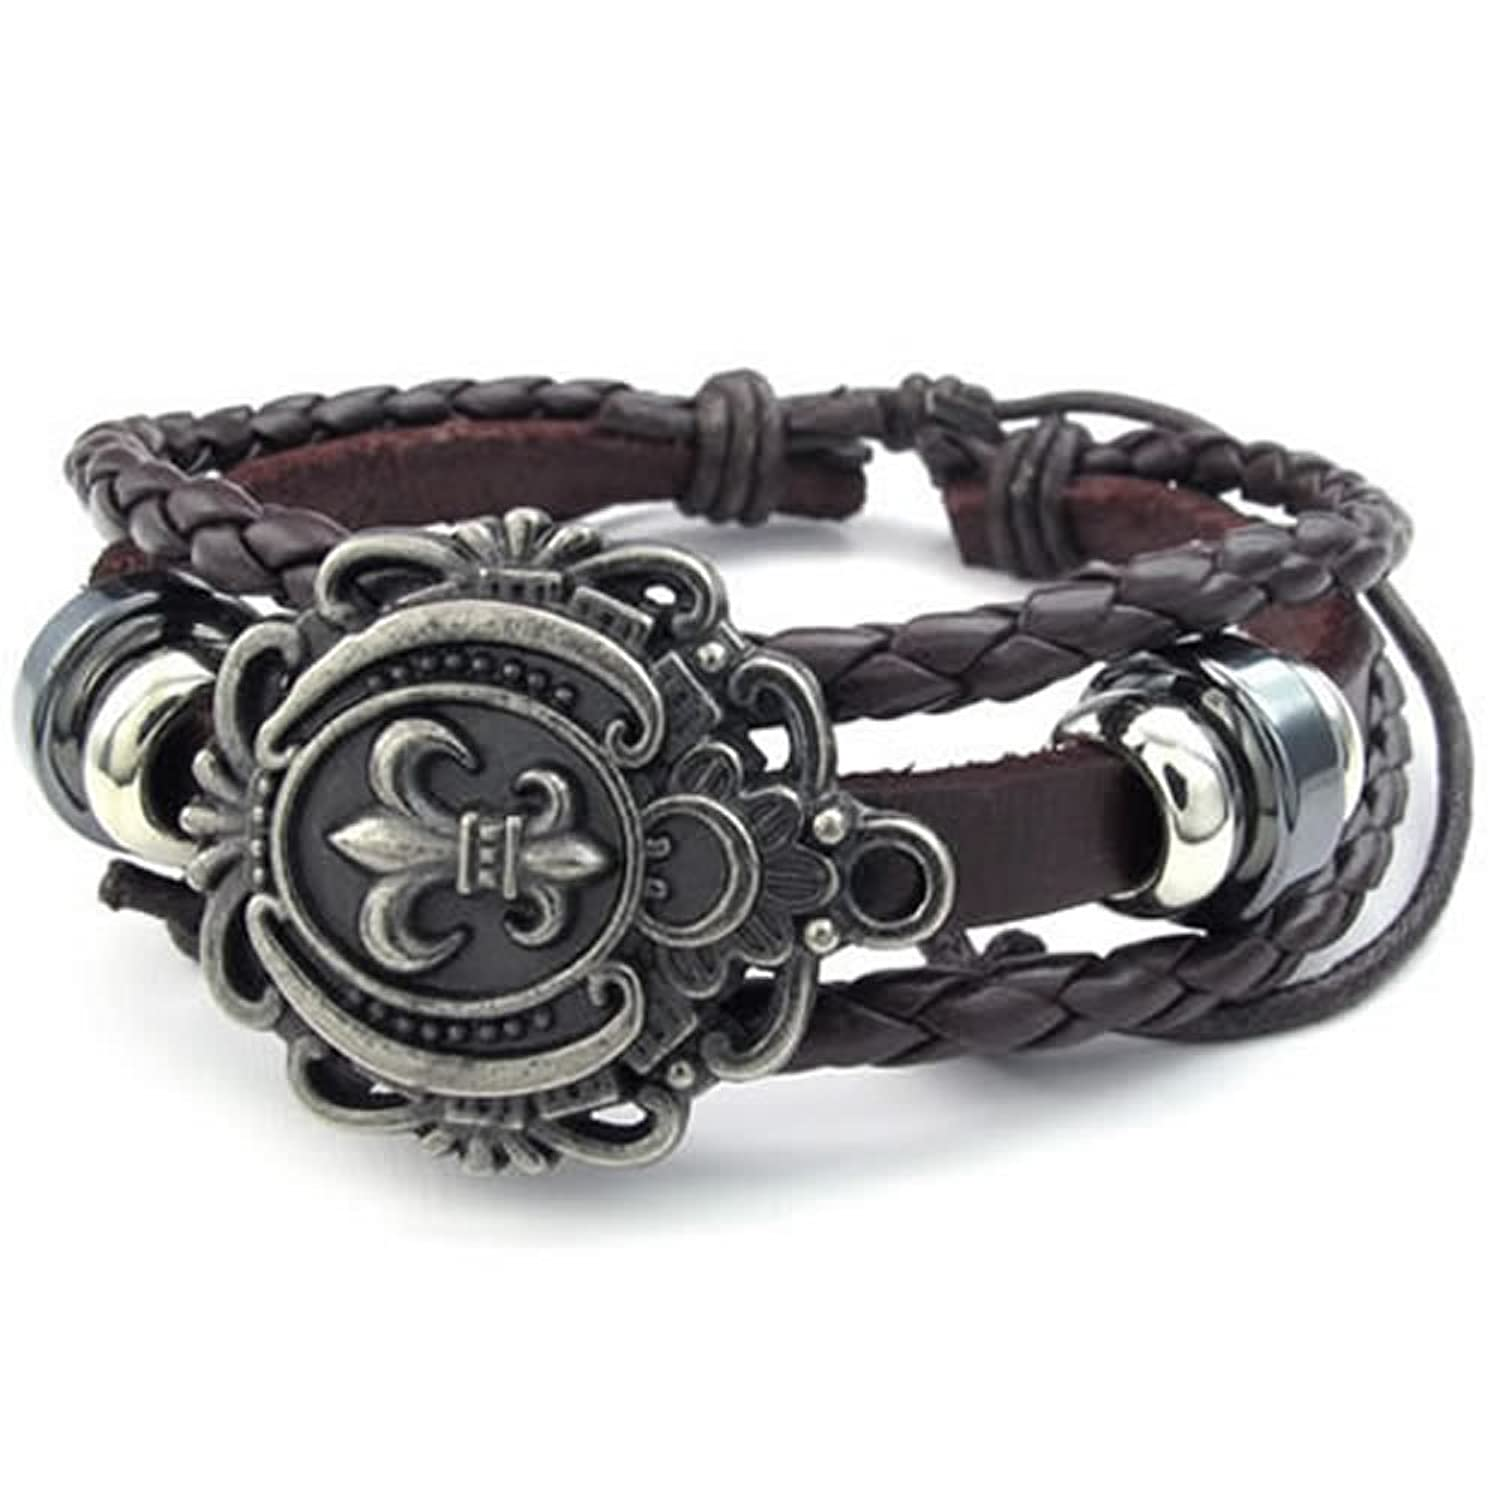 KONOV Jewelry Mens Womens Leather Bracelet, Fleur De Lis Charm Bangle, Fit 7-9 inch, Brown